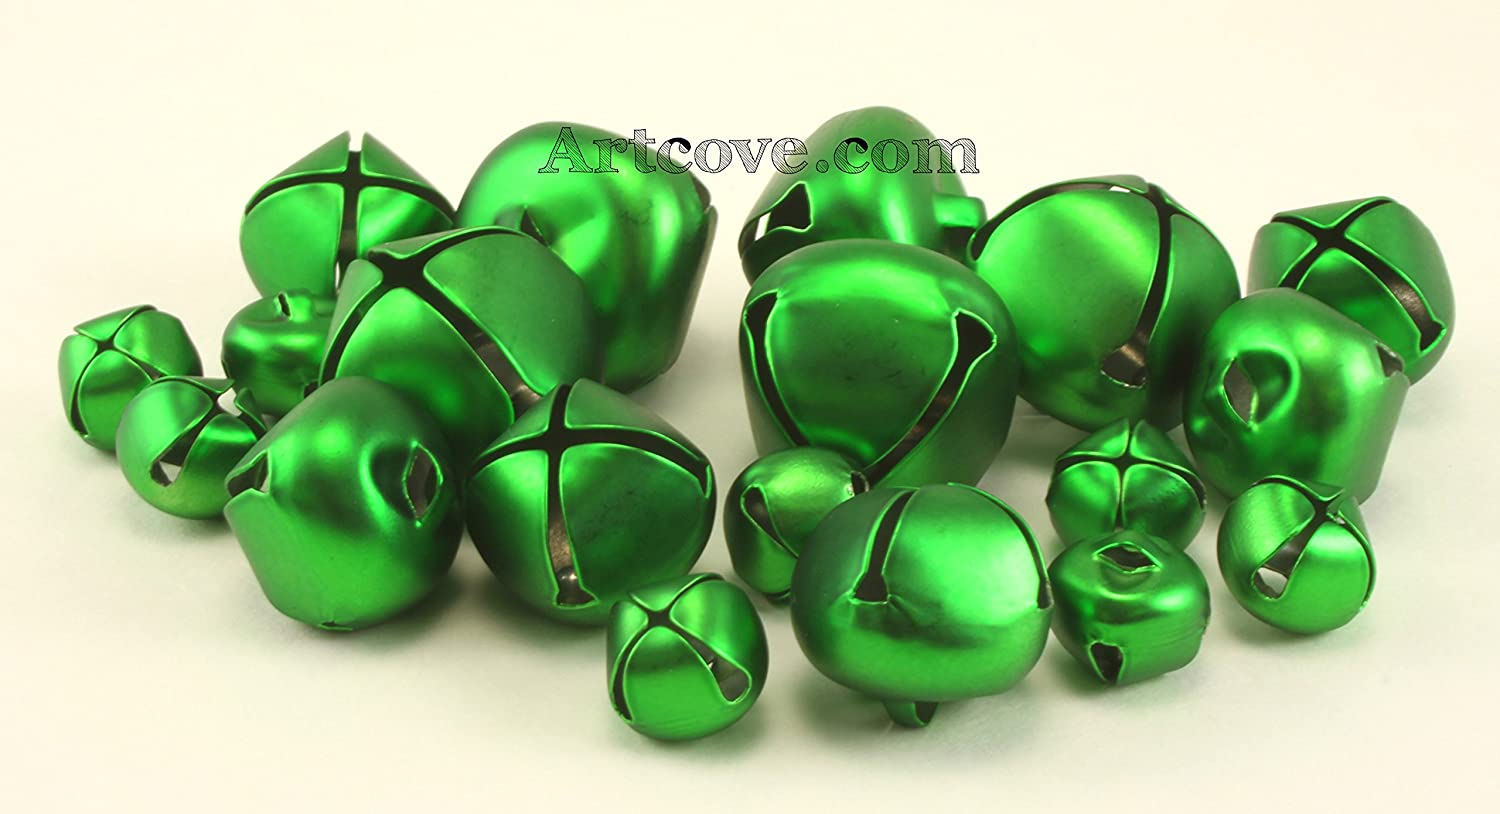 Green Craft Tiny Small Jingle Bells Assorted Sizes 1/2, 3/4 and 1 inch 19 Pieces Darice 4336848481